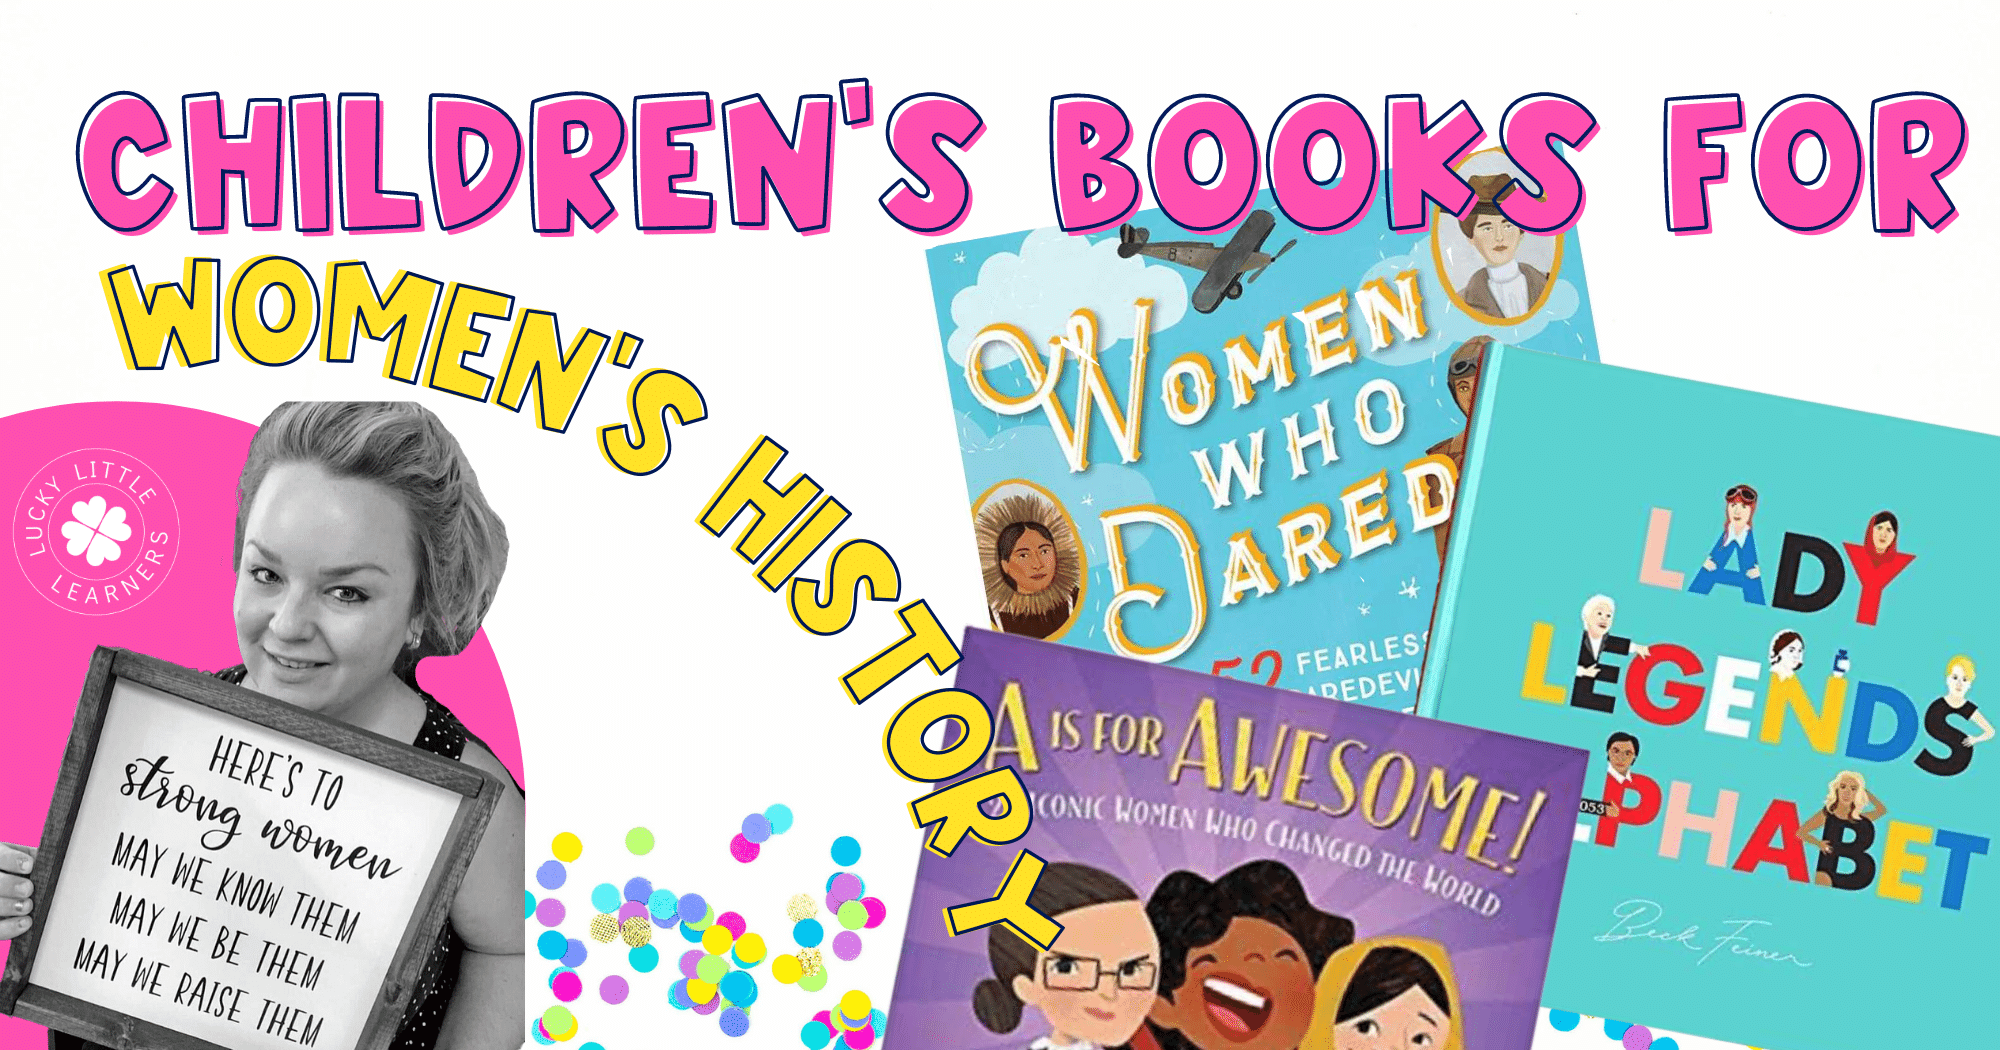 Children's Books About Women's History